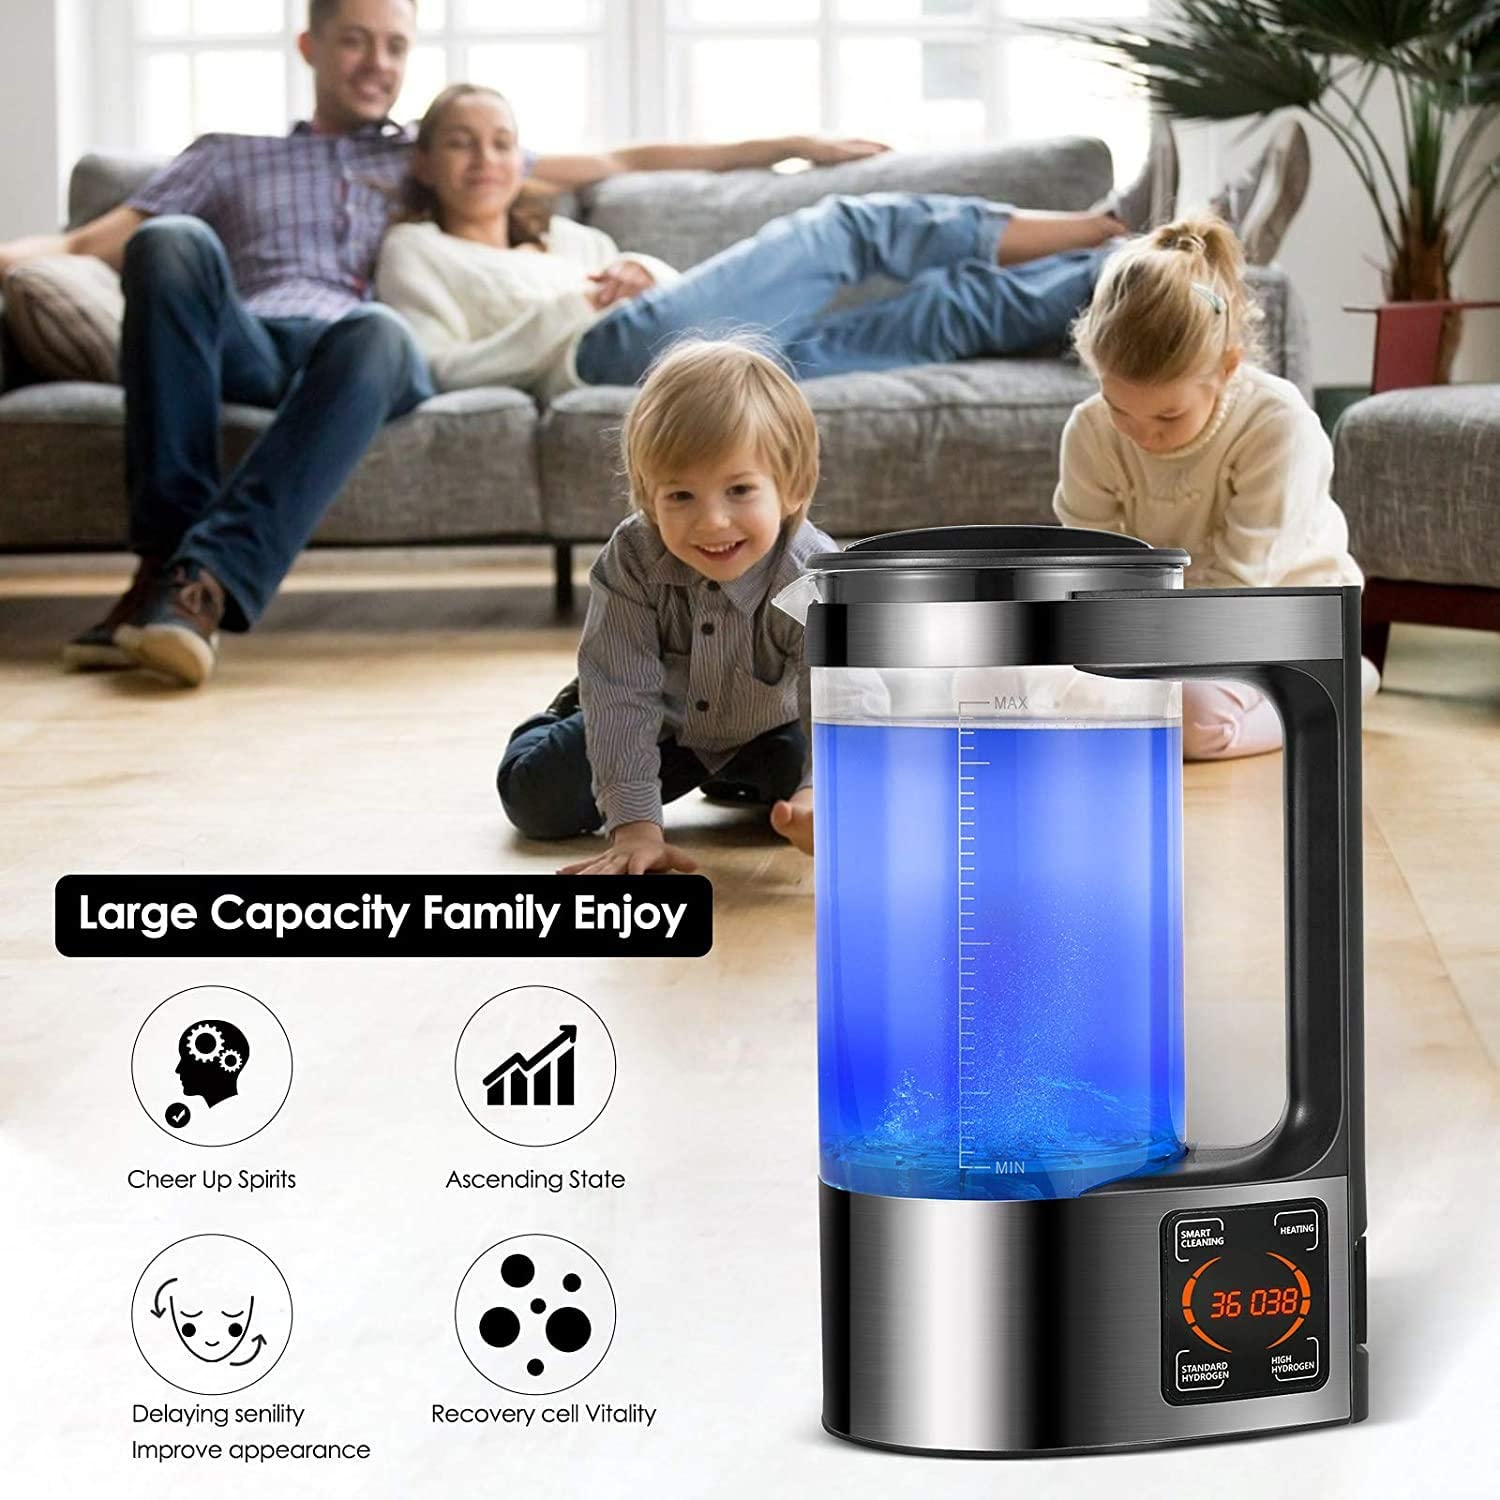 DQXY Hydrogen Water Generator Water ion Generator with Thermostat Digital Touch Control LED Display Hydrogen-Rich Water Bottle Health Cup for Family Use 2L Large Capacity